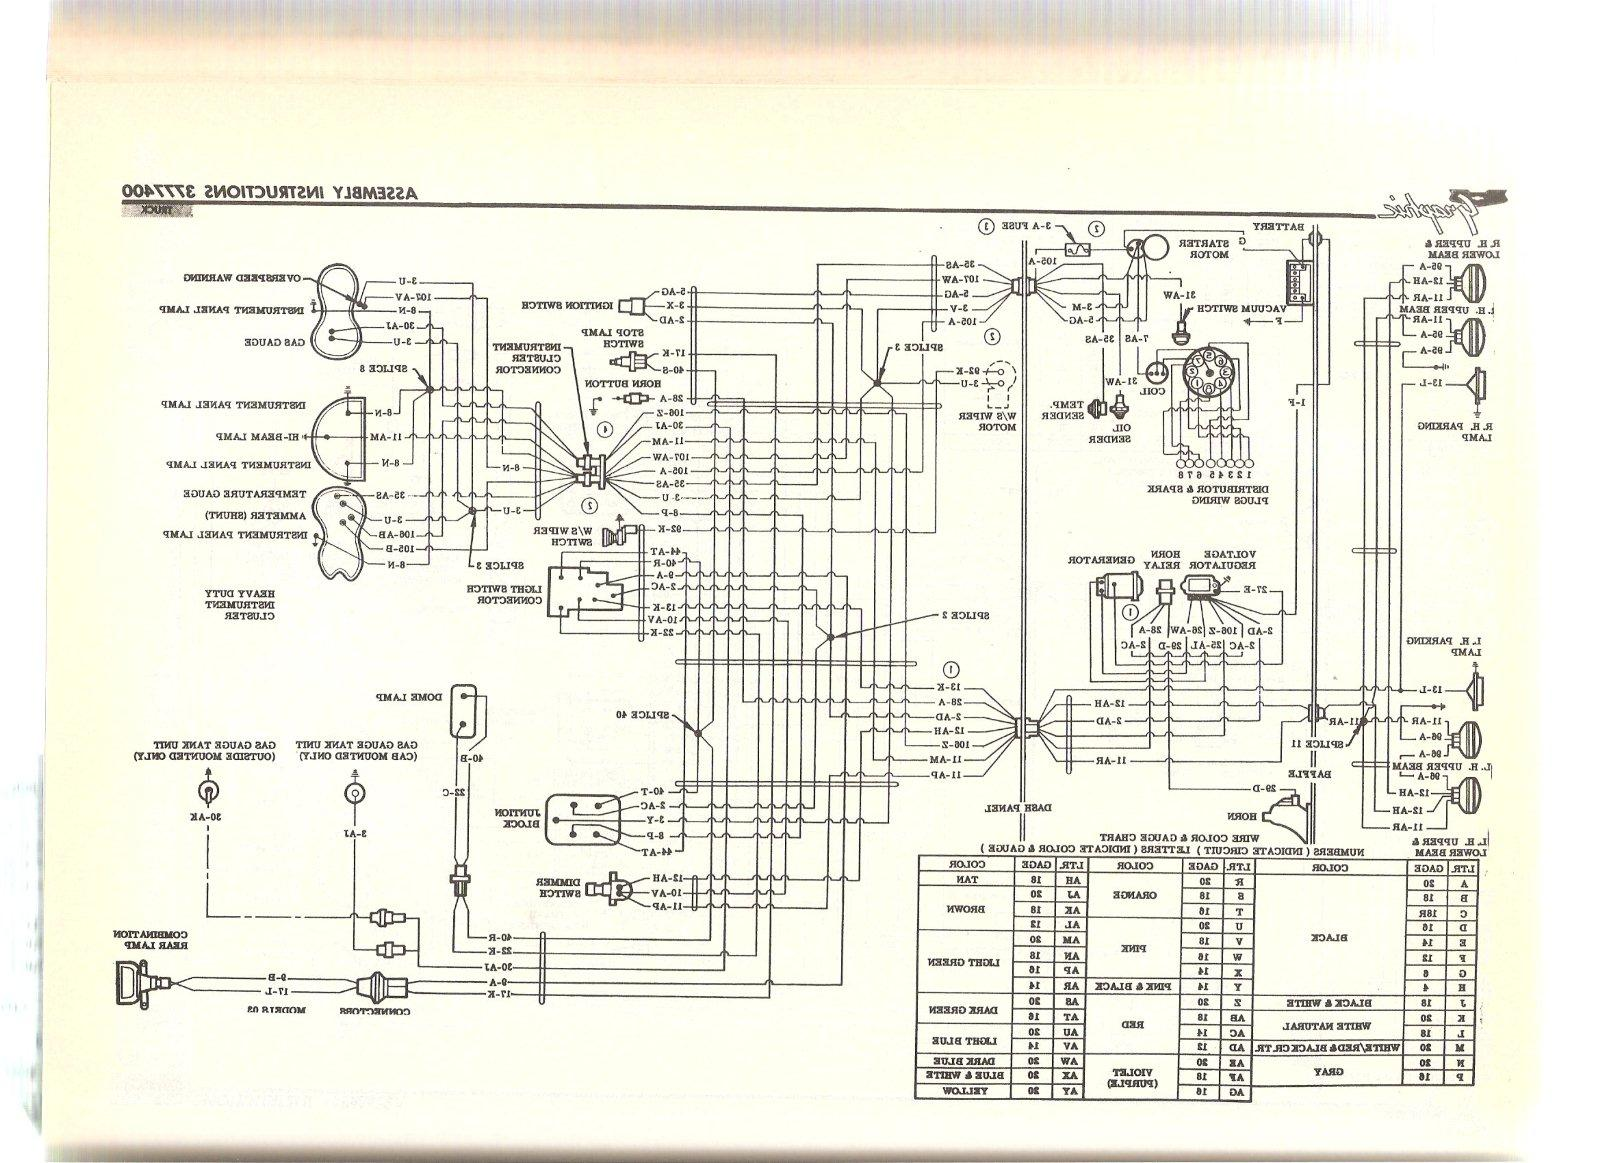 Wiring Diagram 1959 Chrysler Windsor Wiring Diagram Expert